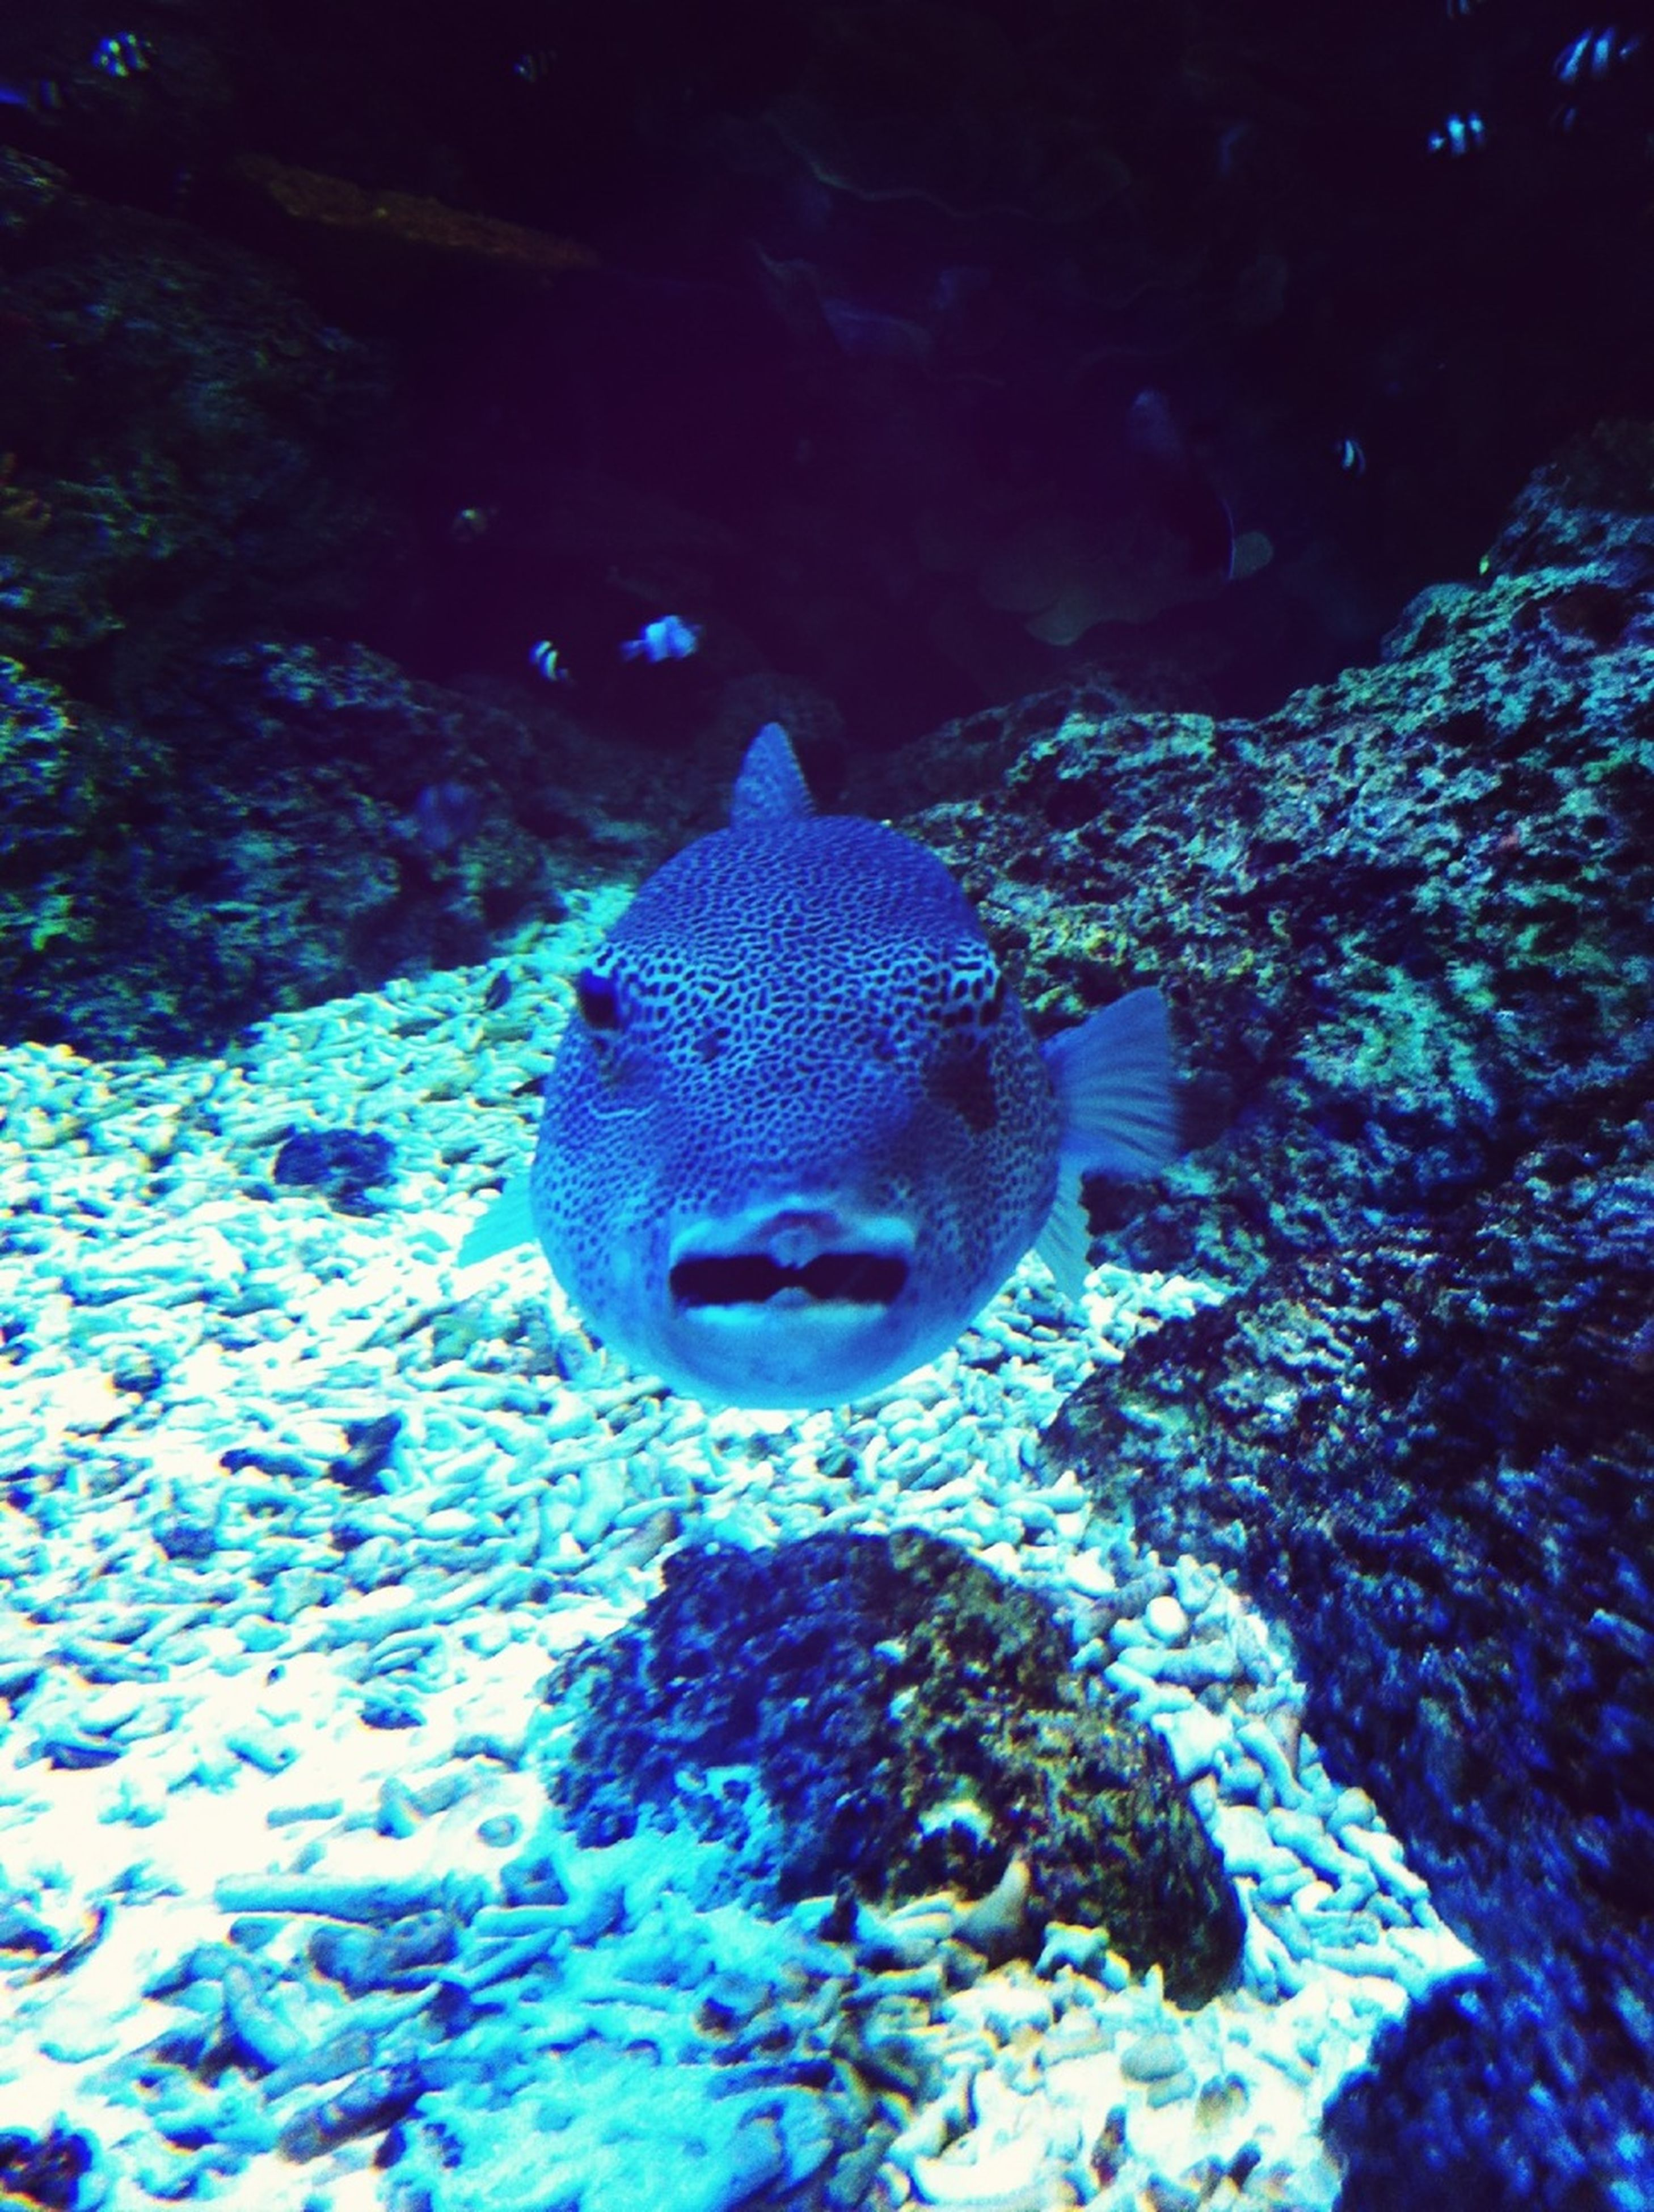 animal themes, one animal, animals in the wild, wildlife, underwater, blue, water, swimming, sea life, close-up, rock - object, nature, animal head, animals in captivity, no people, fish, outdoors, zoology, beauty in nature, undersea